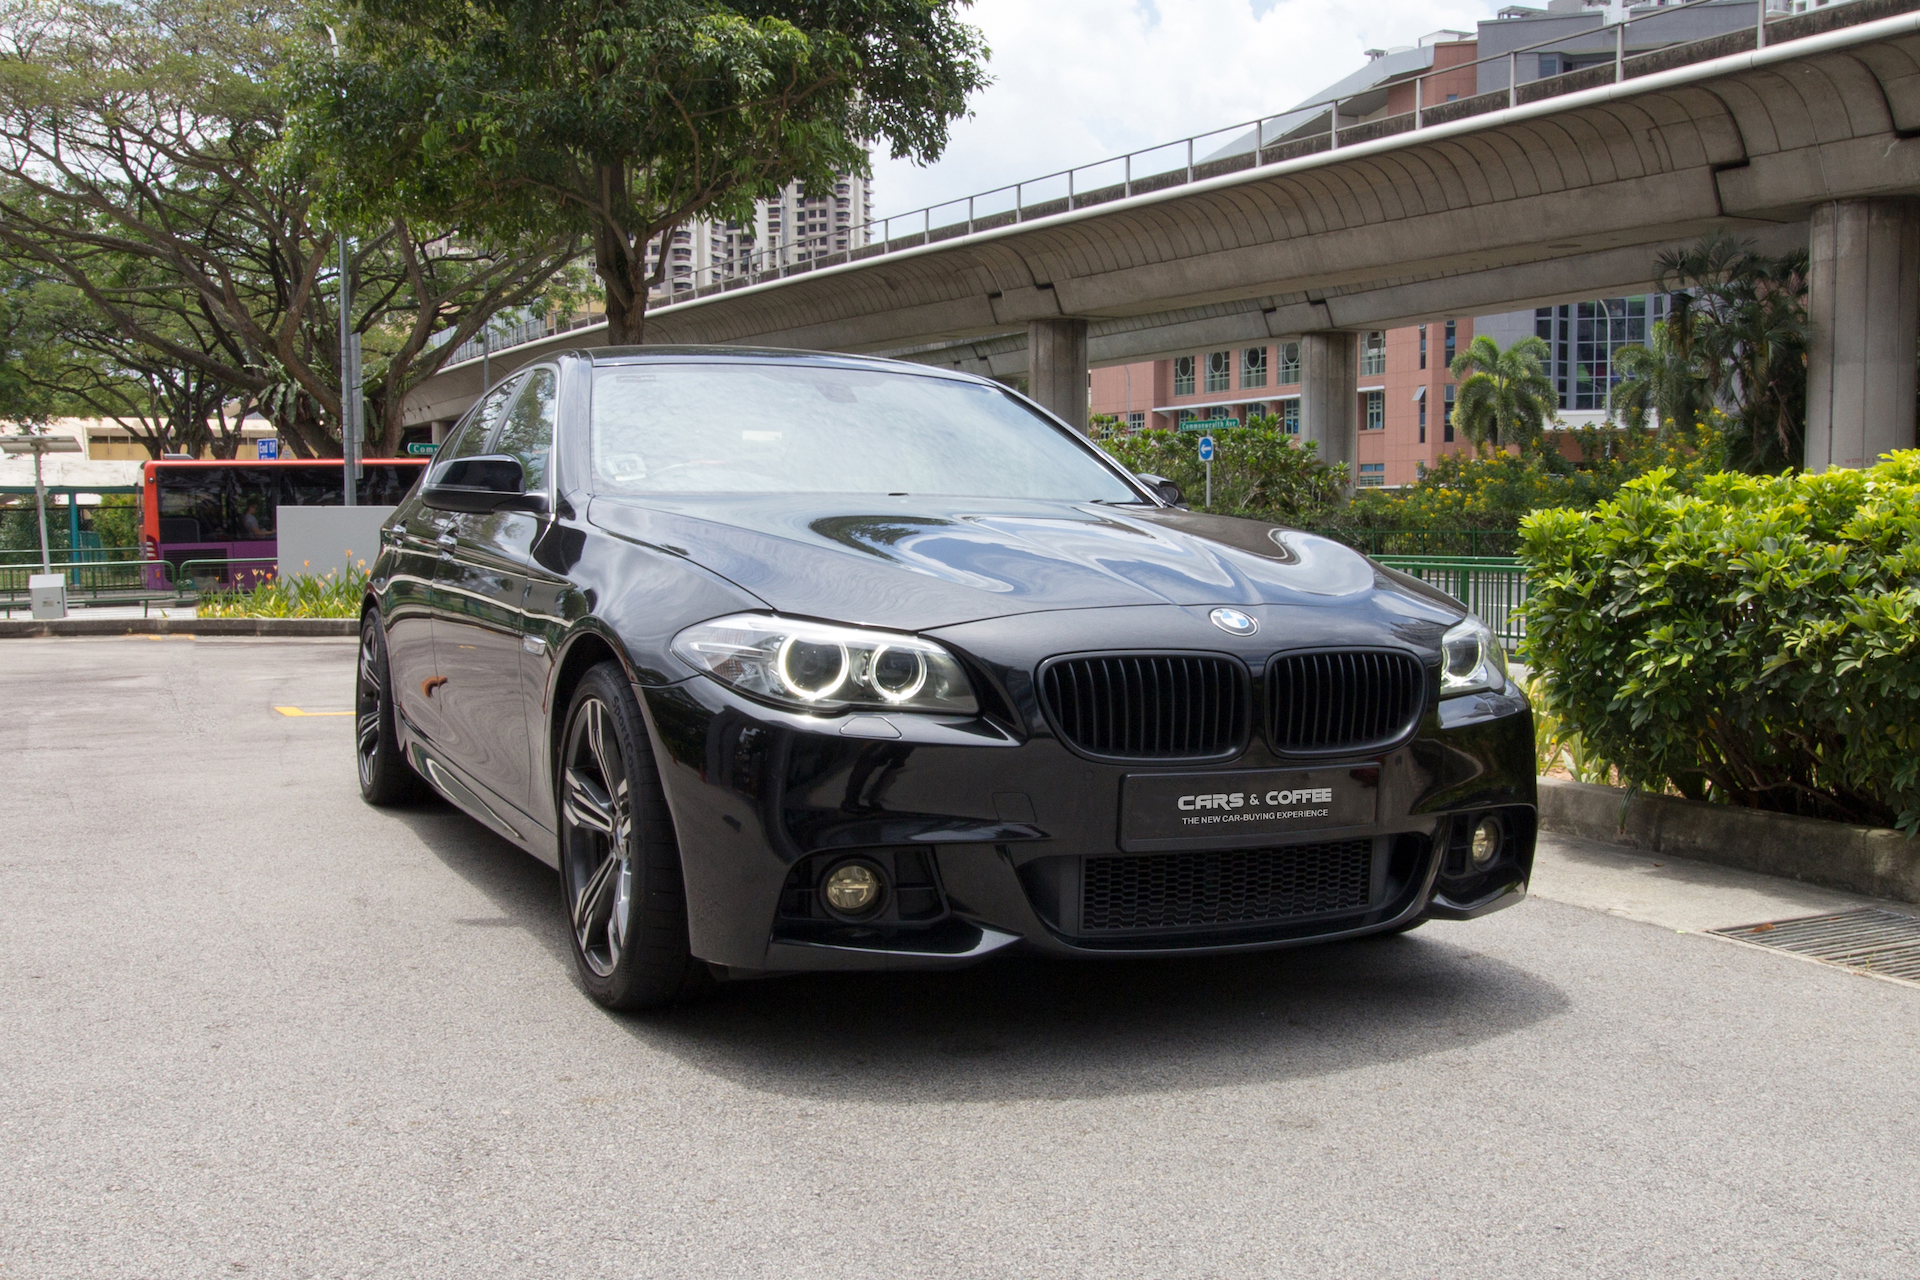 Certified Pre-Owned BMW 528i   Cars and Coffee Singapore